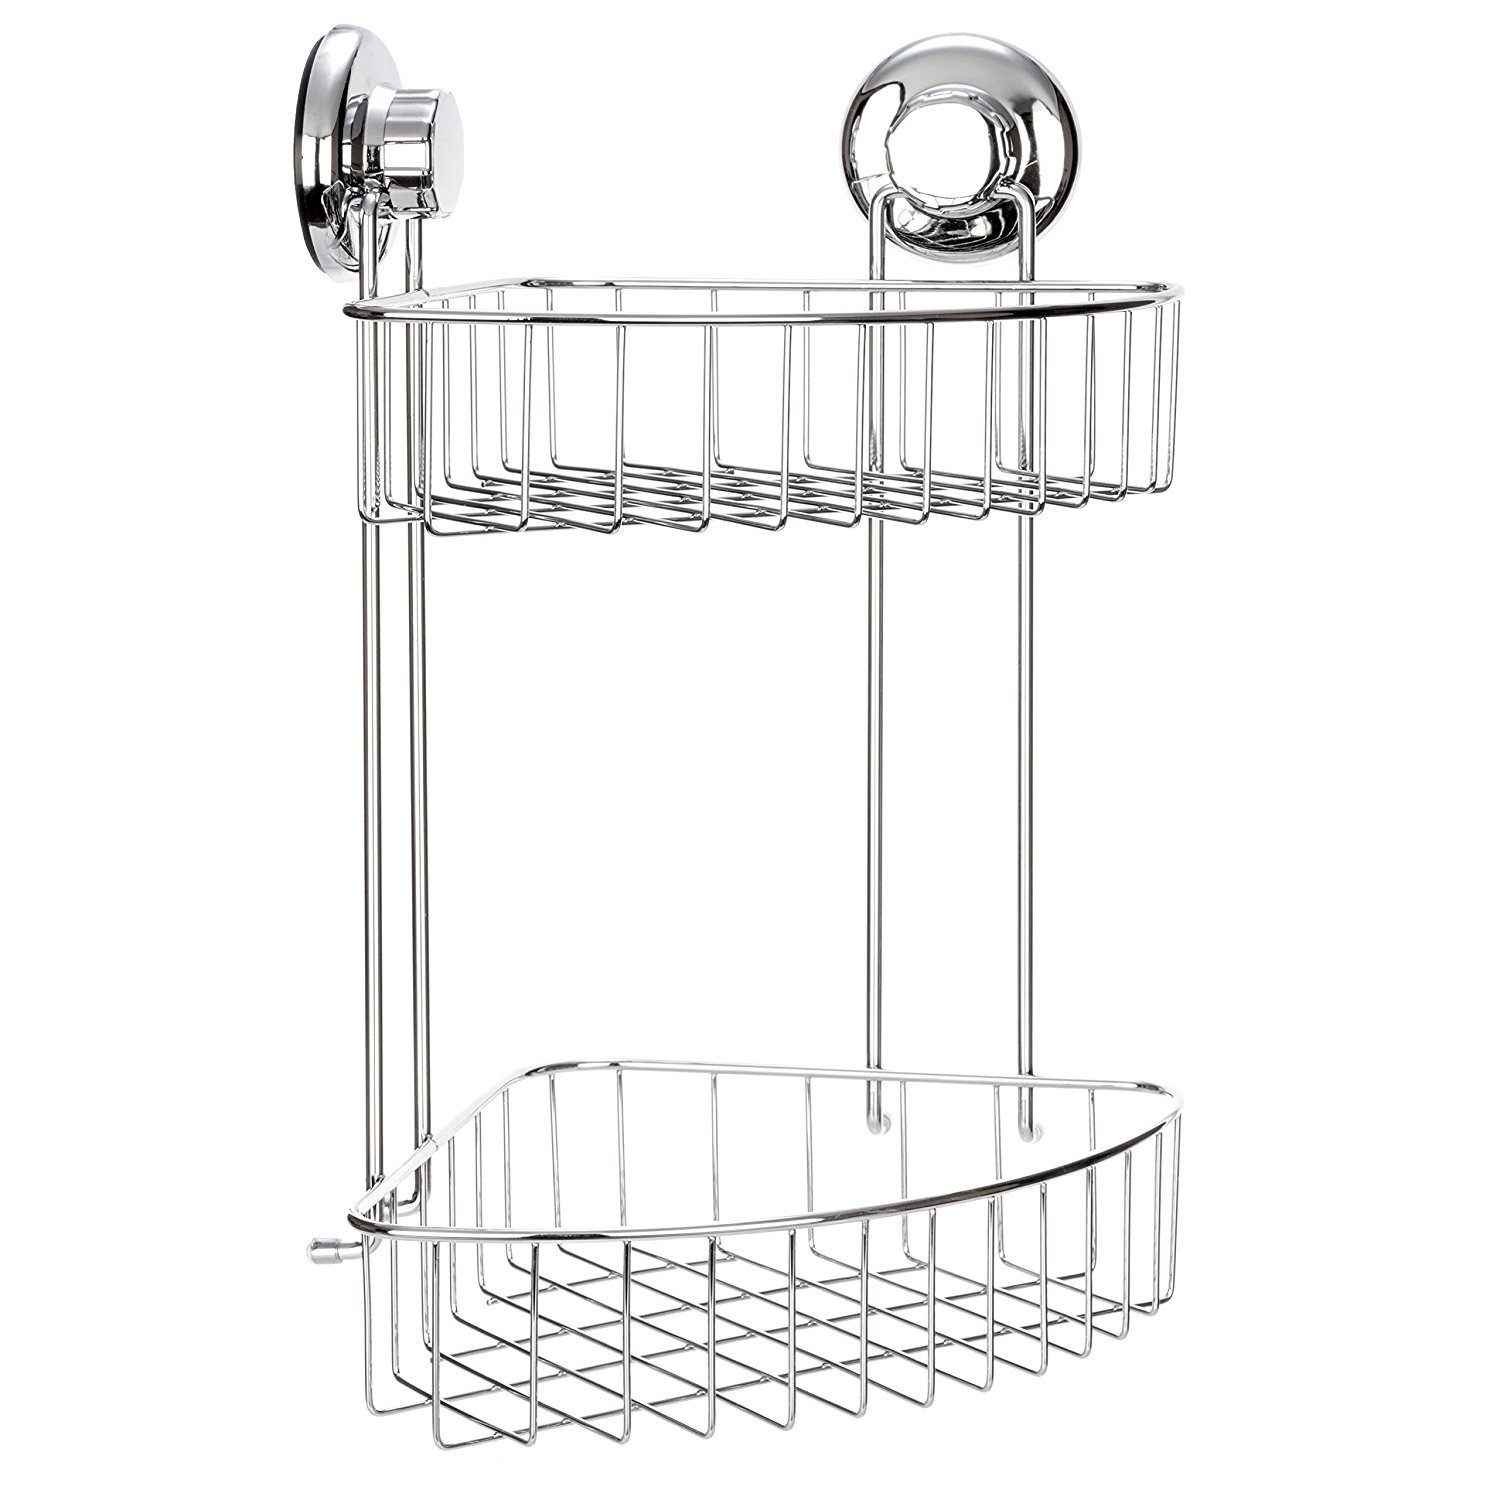 HASKO accessories Suction Cup Corner Shower Caddy | 304 Stainless Steel Polished Chrome Shelf 2 Tier Basket Holder for Bathroom and kitchen